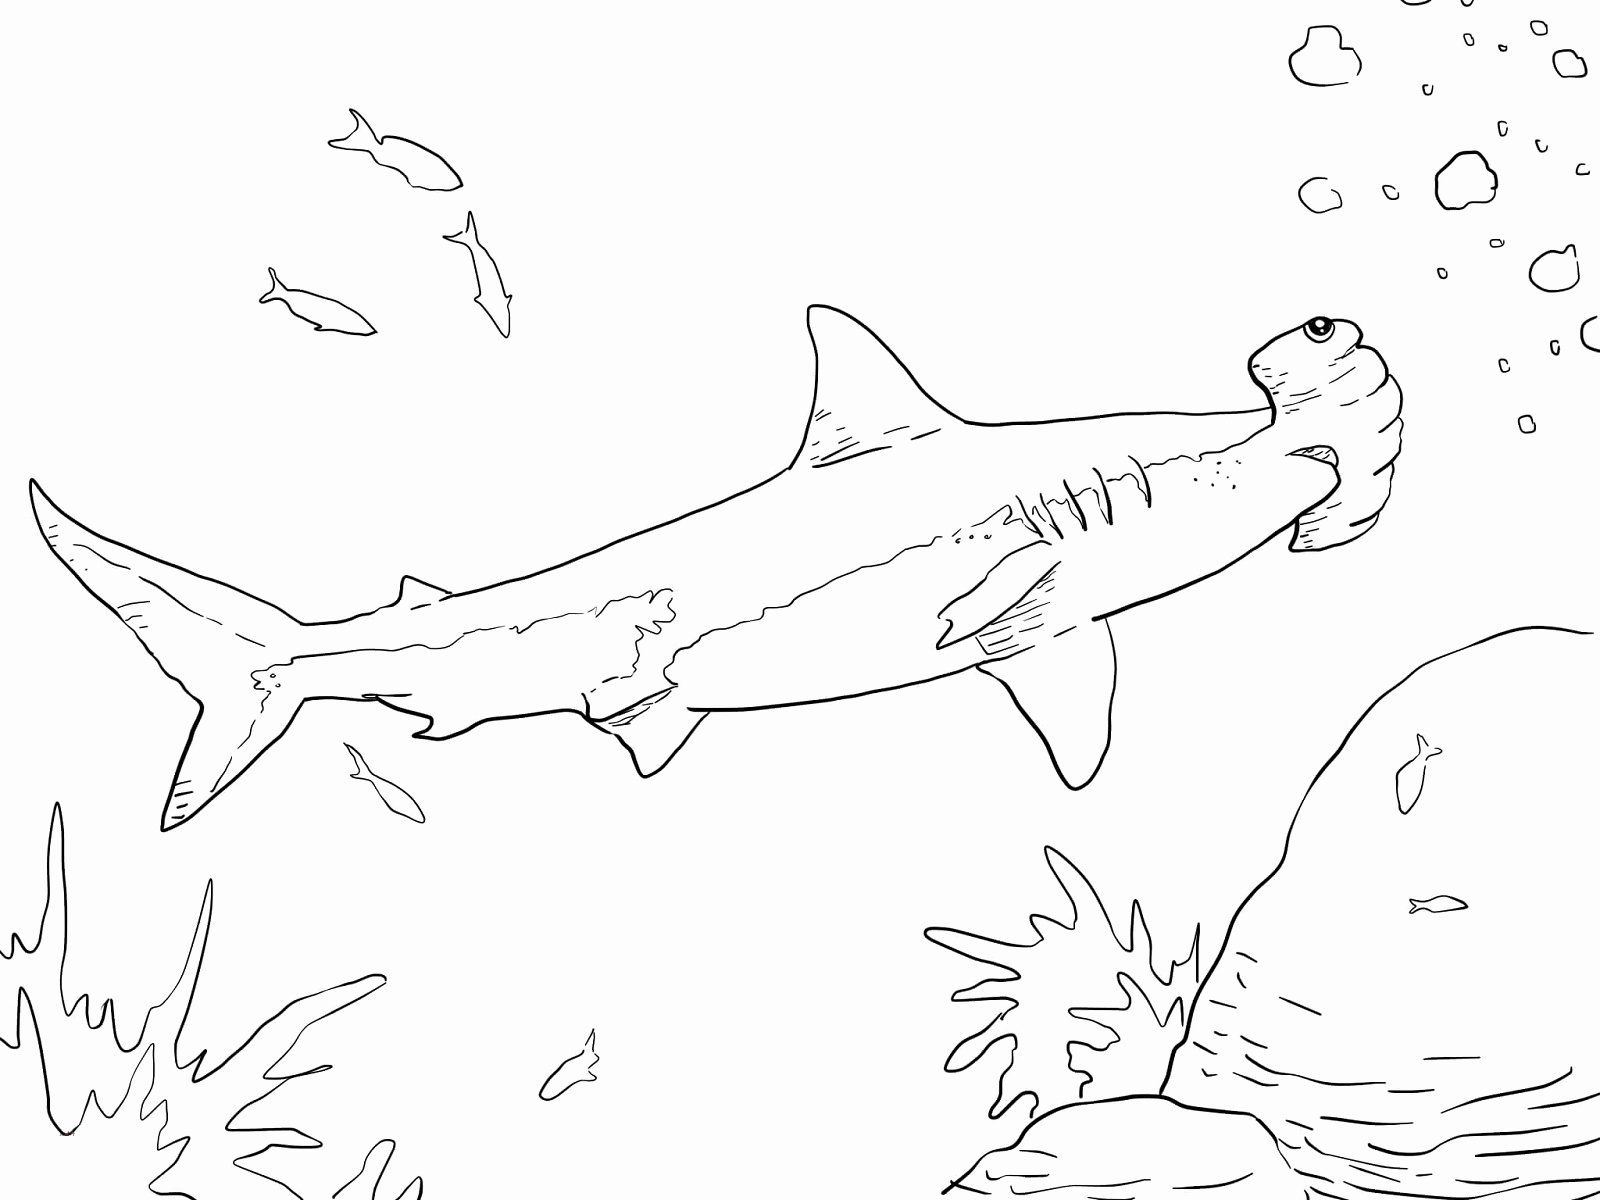 hammerhead shark pictures to color hammerhead shark cut out pattern clipart best color shark pictures to hammerhead